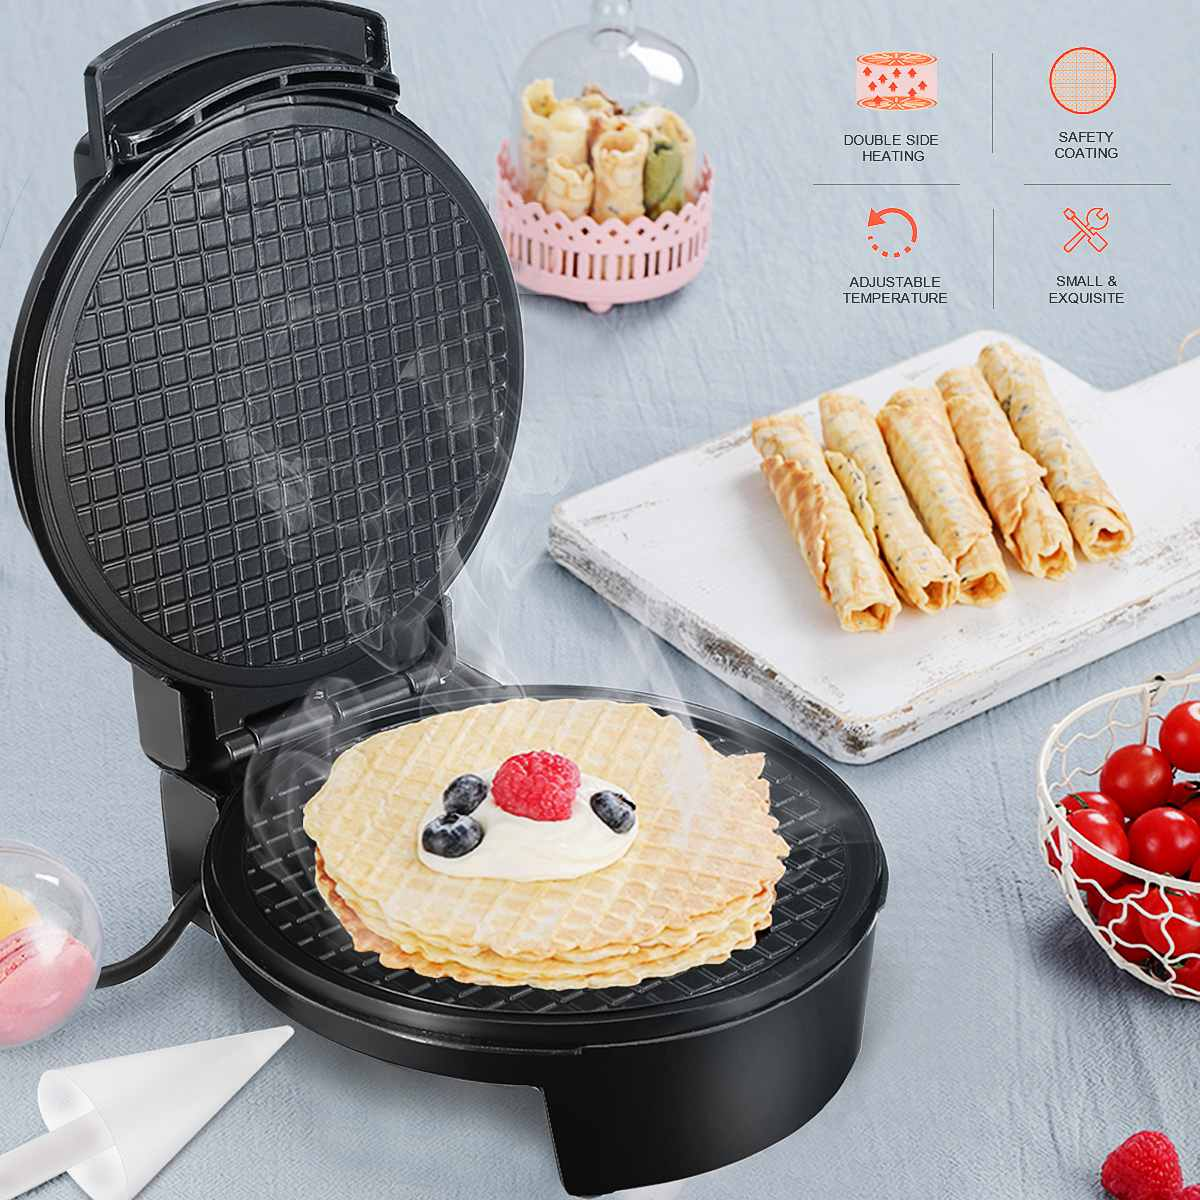 LED Electric Eggs Roll Maker Crispy Omelet Non-Stick Baking Pan Waffles DIY Ice Cream Machine Automatic Temperature Control